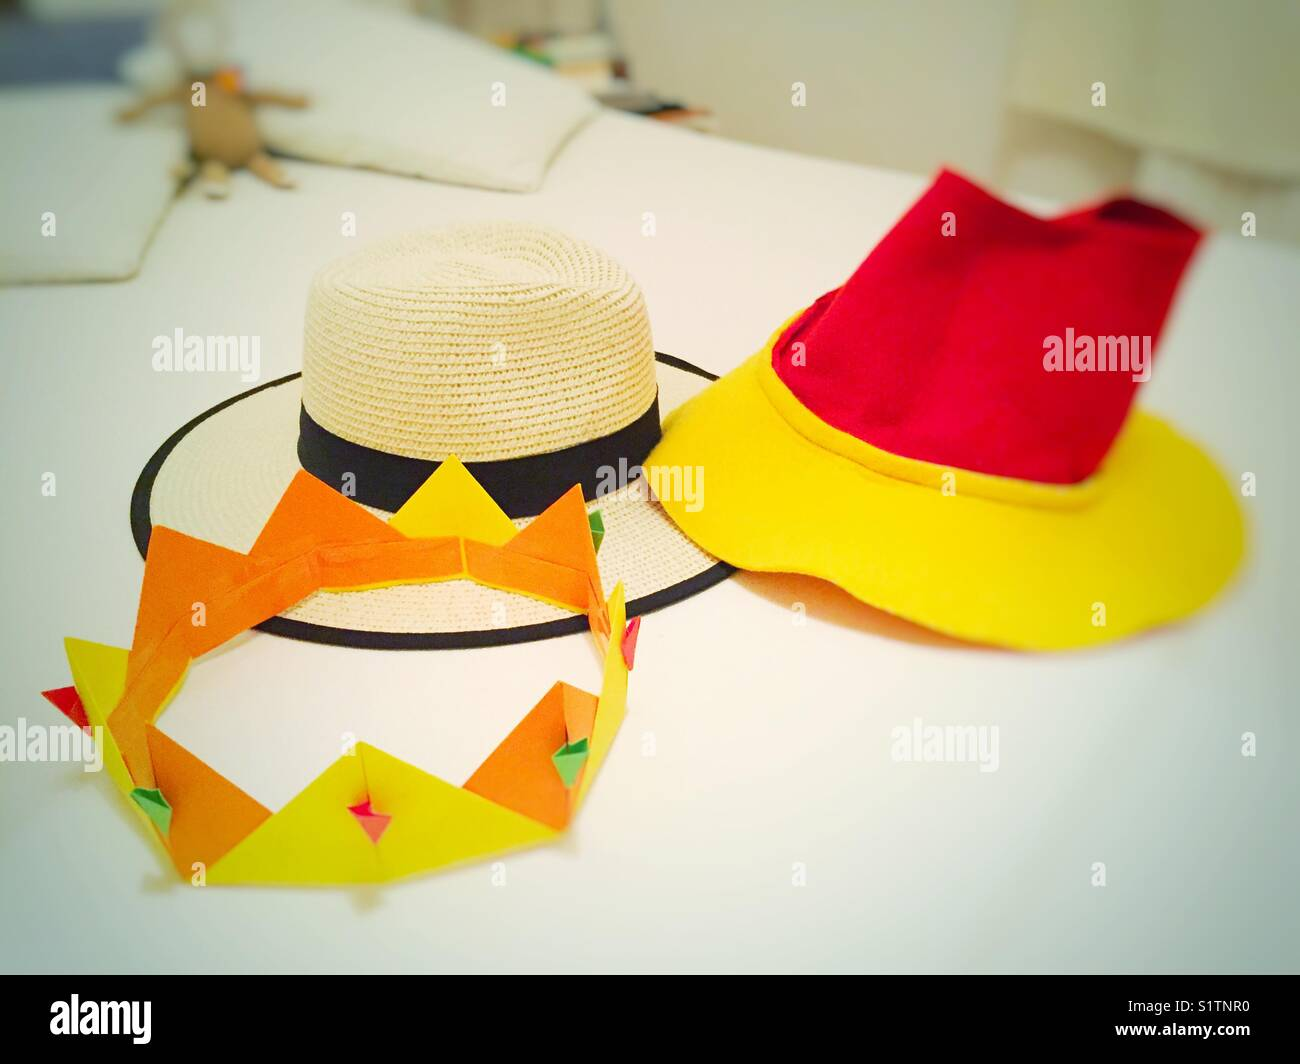 Paper origami yellow crown, red and yellow hat, white and black wide hat. - Stock Image